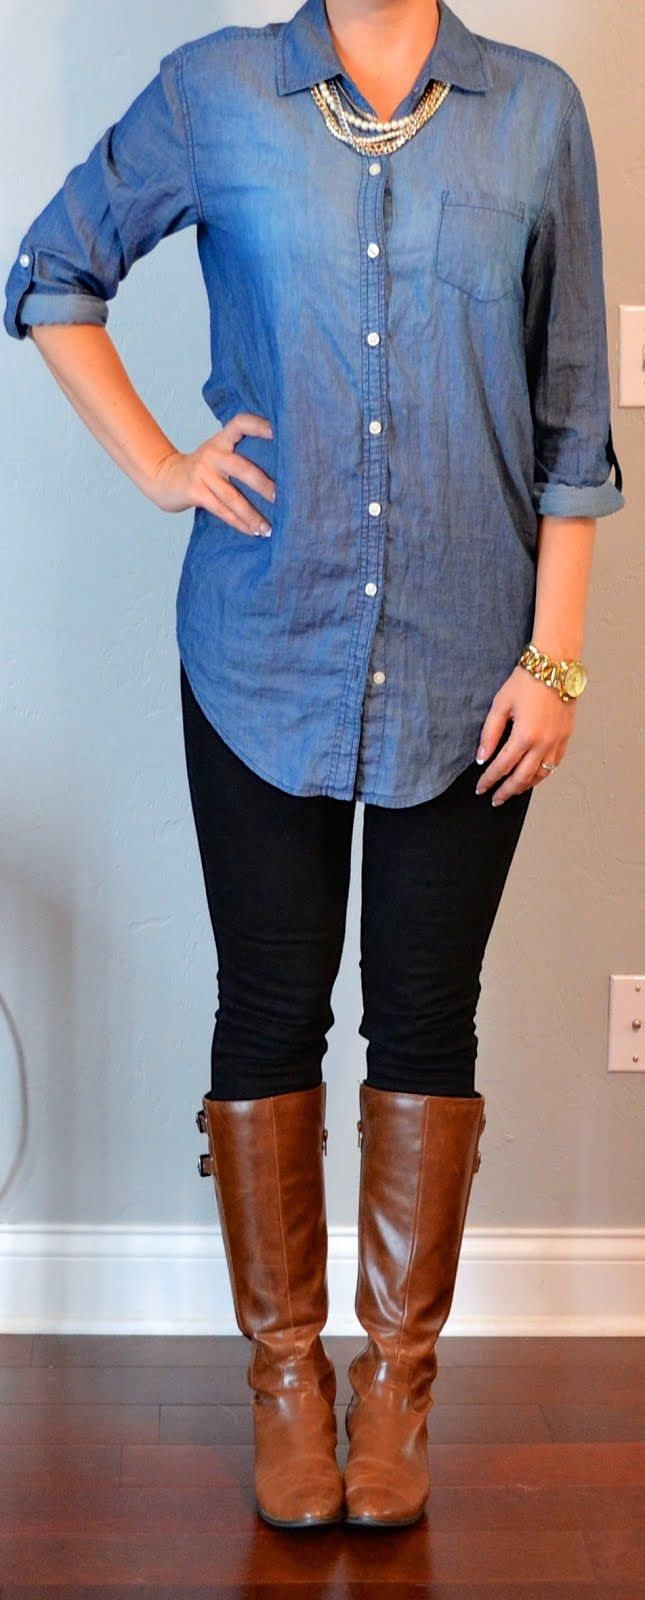 Chambray shirt (Old Navy), Black skinny jeans (Target), Brown boots (Macys) - peral necklace (Ann Taylor) & Michael Kors gold link watch (Nordstrom)...